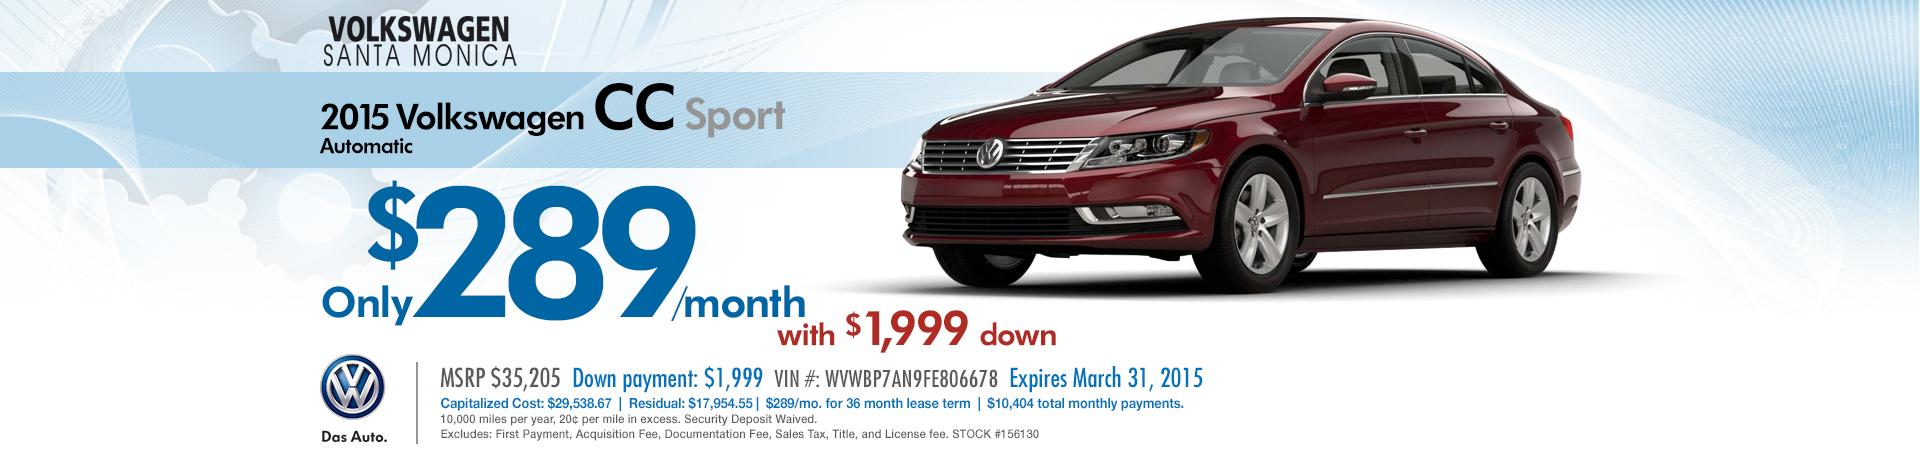 Save with this 2015 Volkswagen CC Sport Lease Offer available at VW Santa Monica in the Los Angeles Area